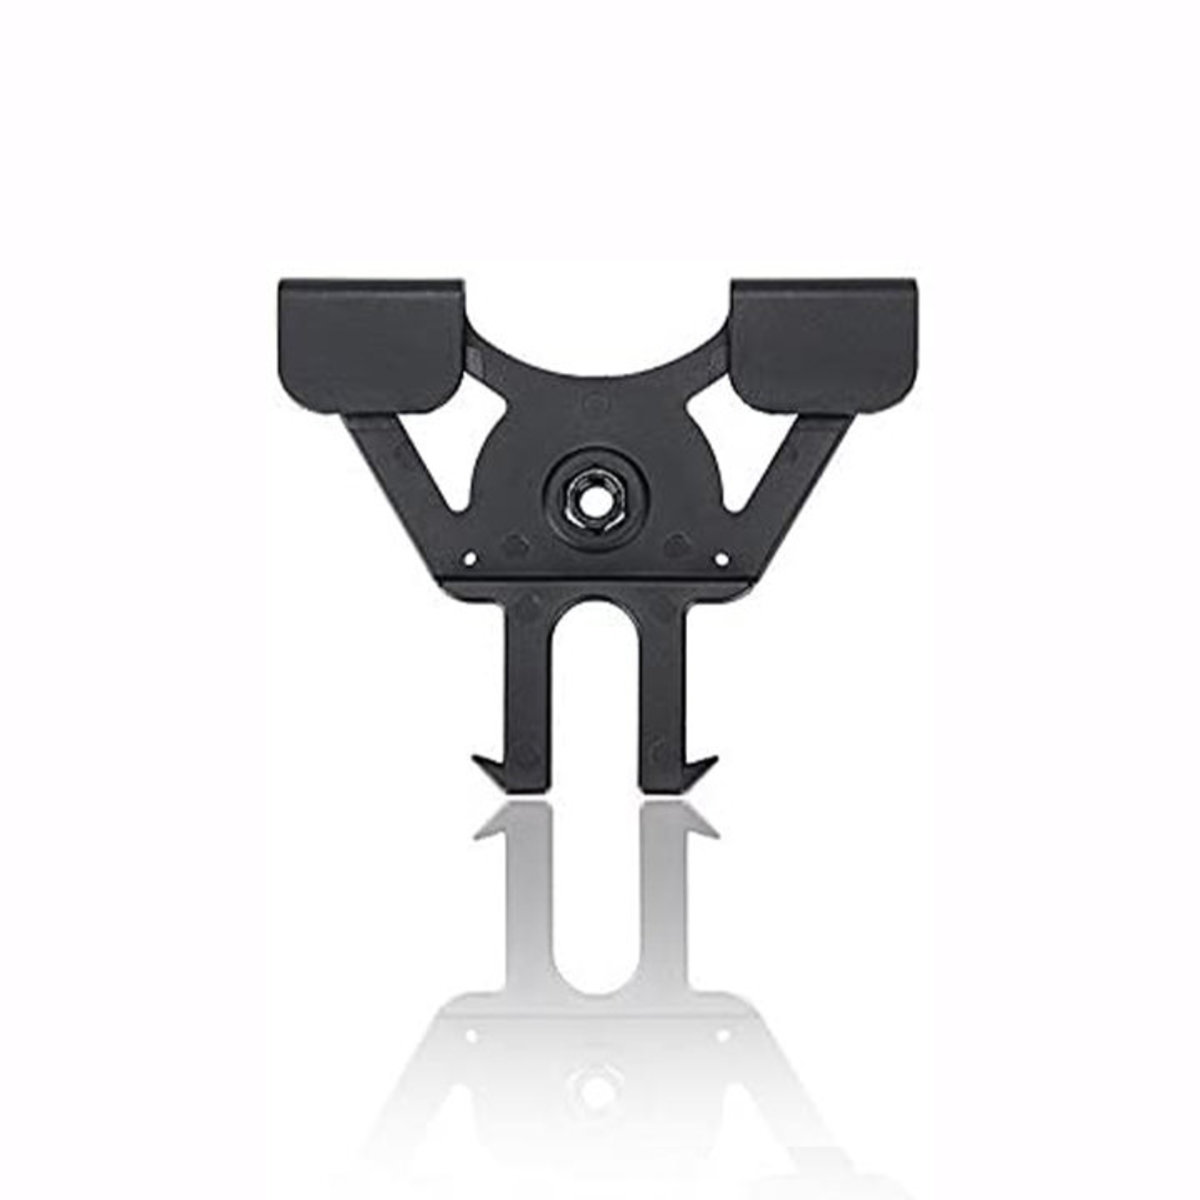 View larger image of Cytac MOLLE Holster/Mag Adapter